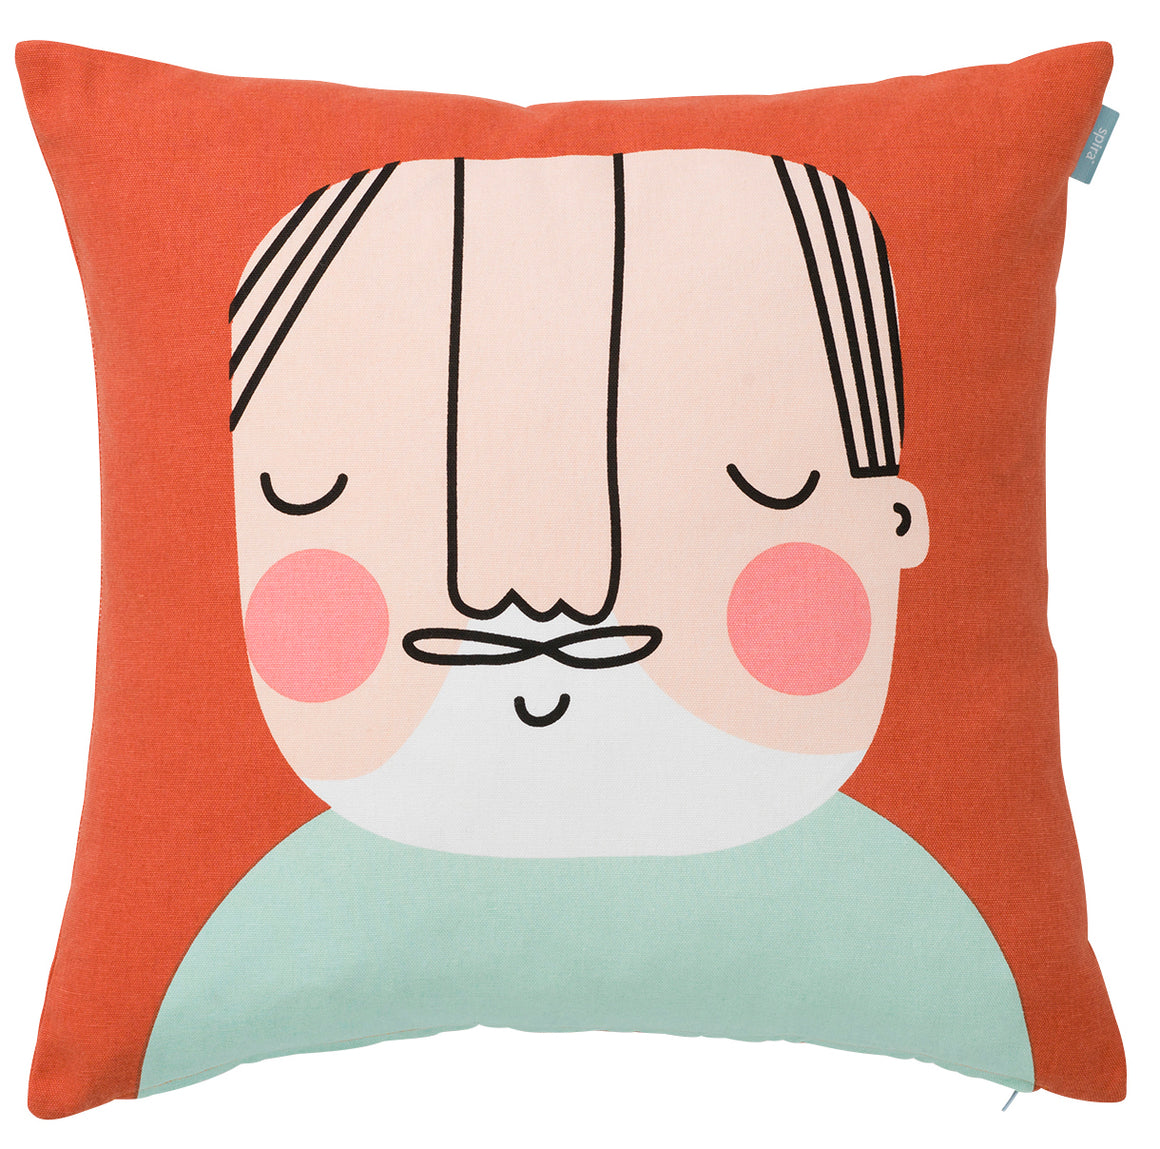 Ake face cushion-by Spira of Sweden